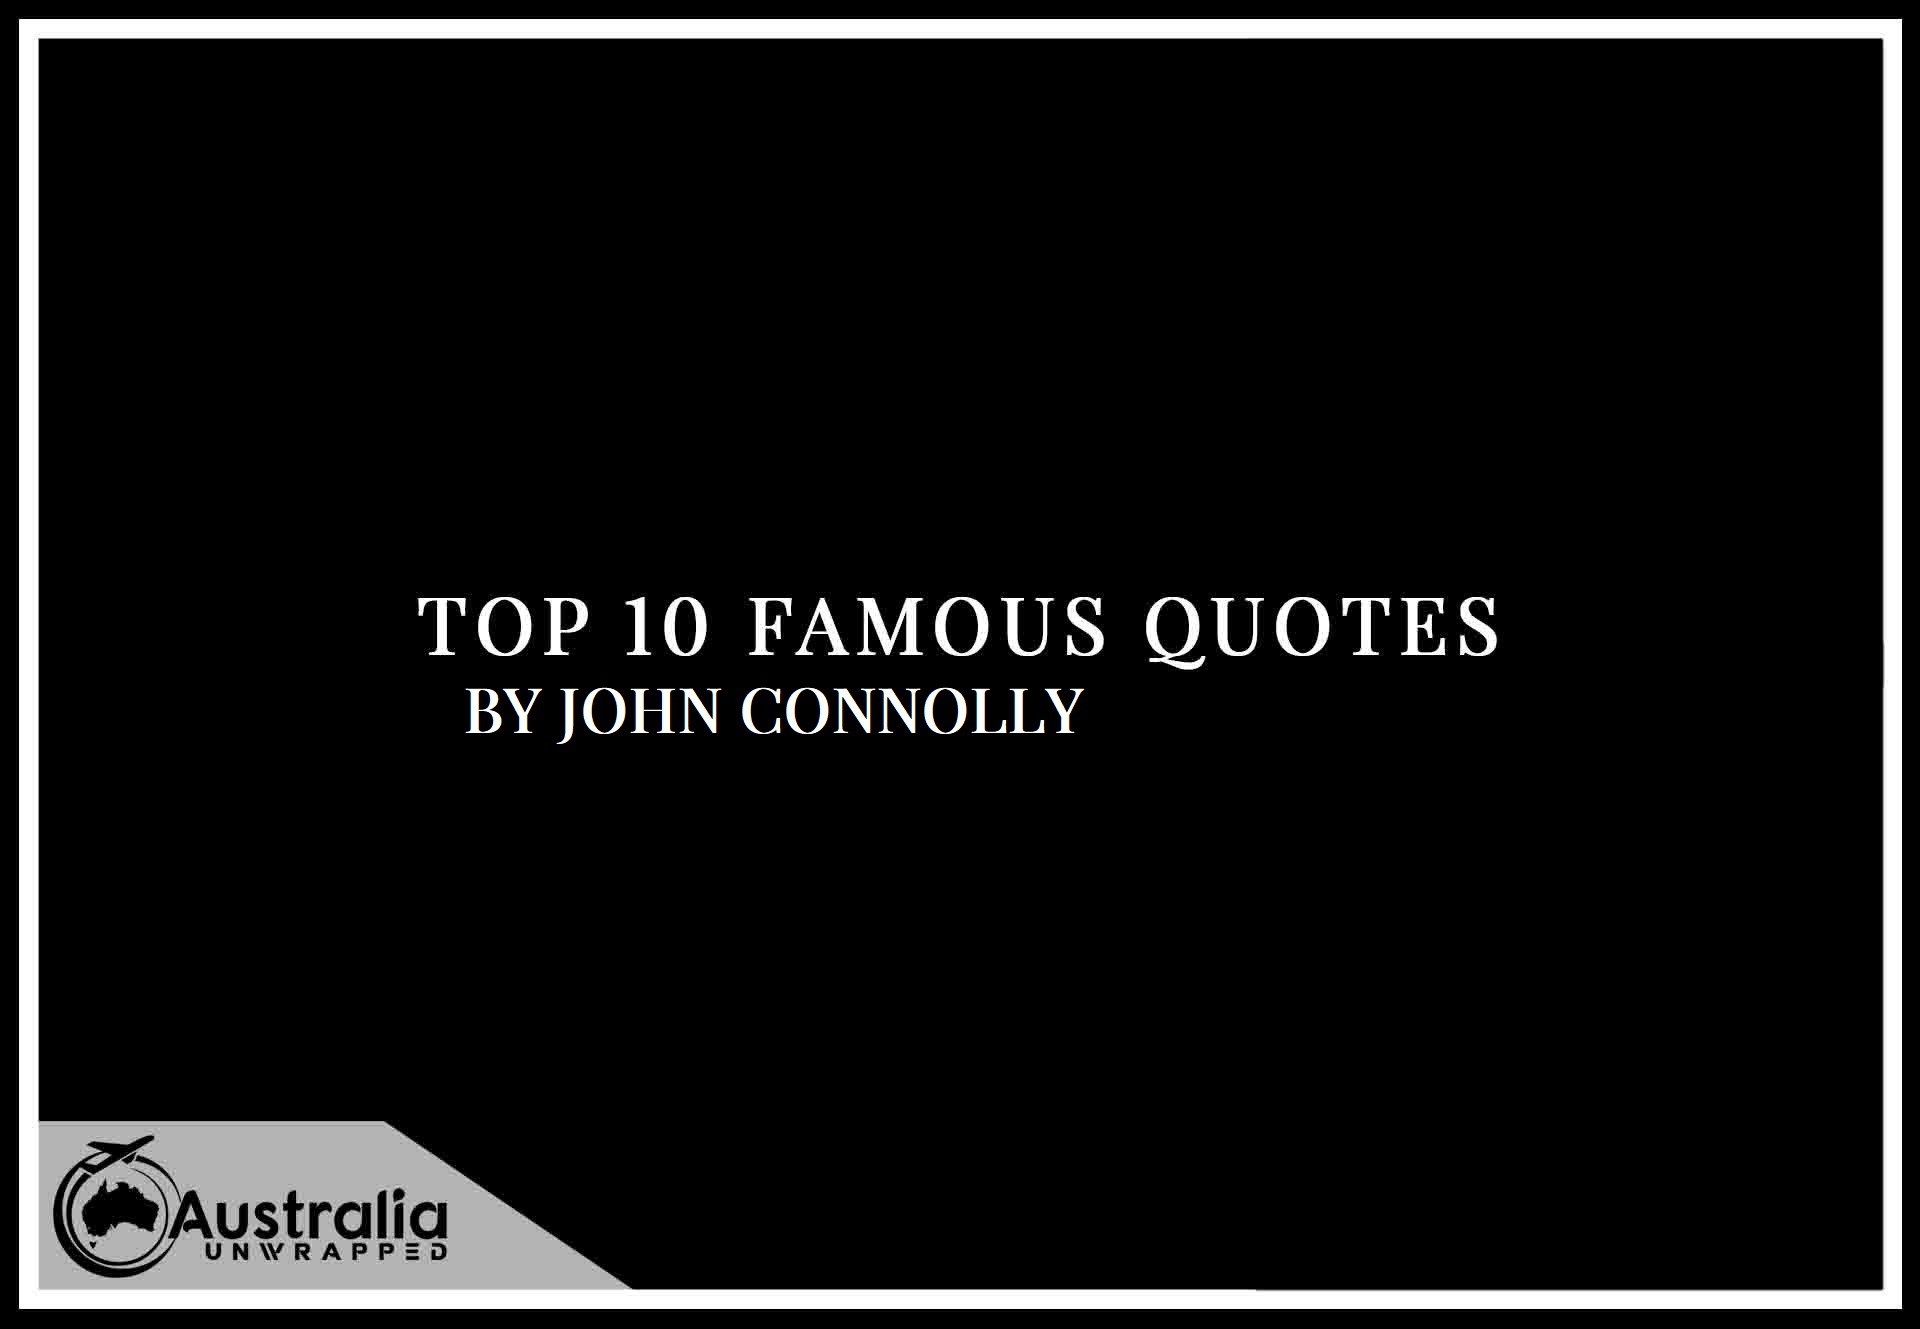 Top 10 Famous Quotes by Author John Connolly